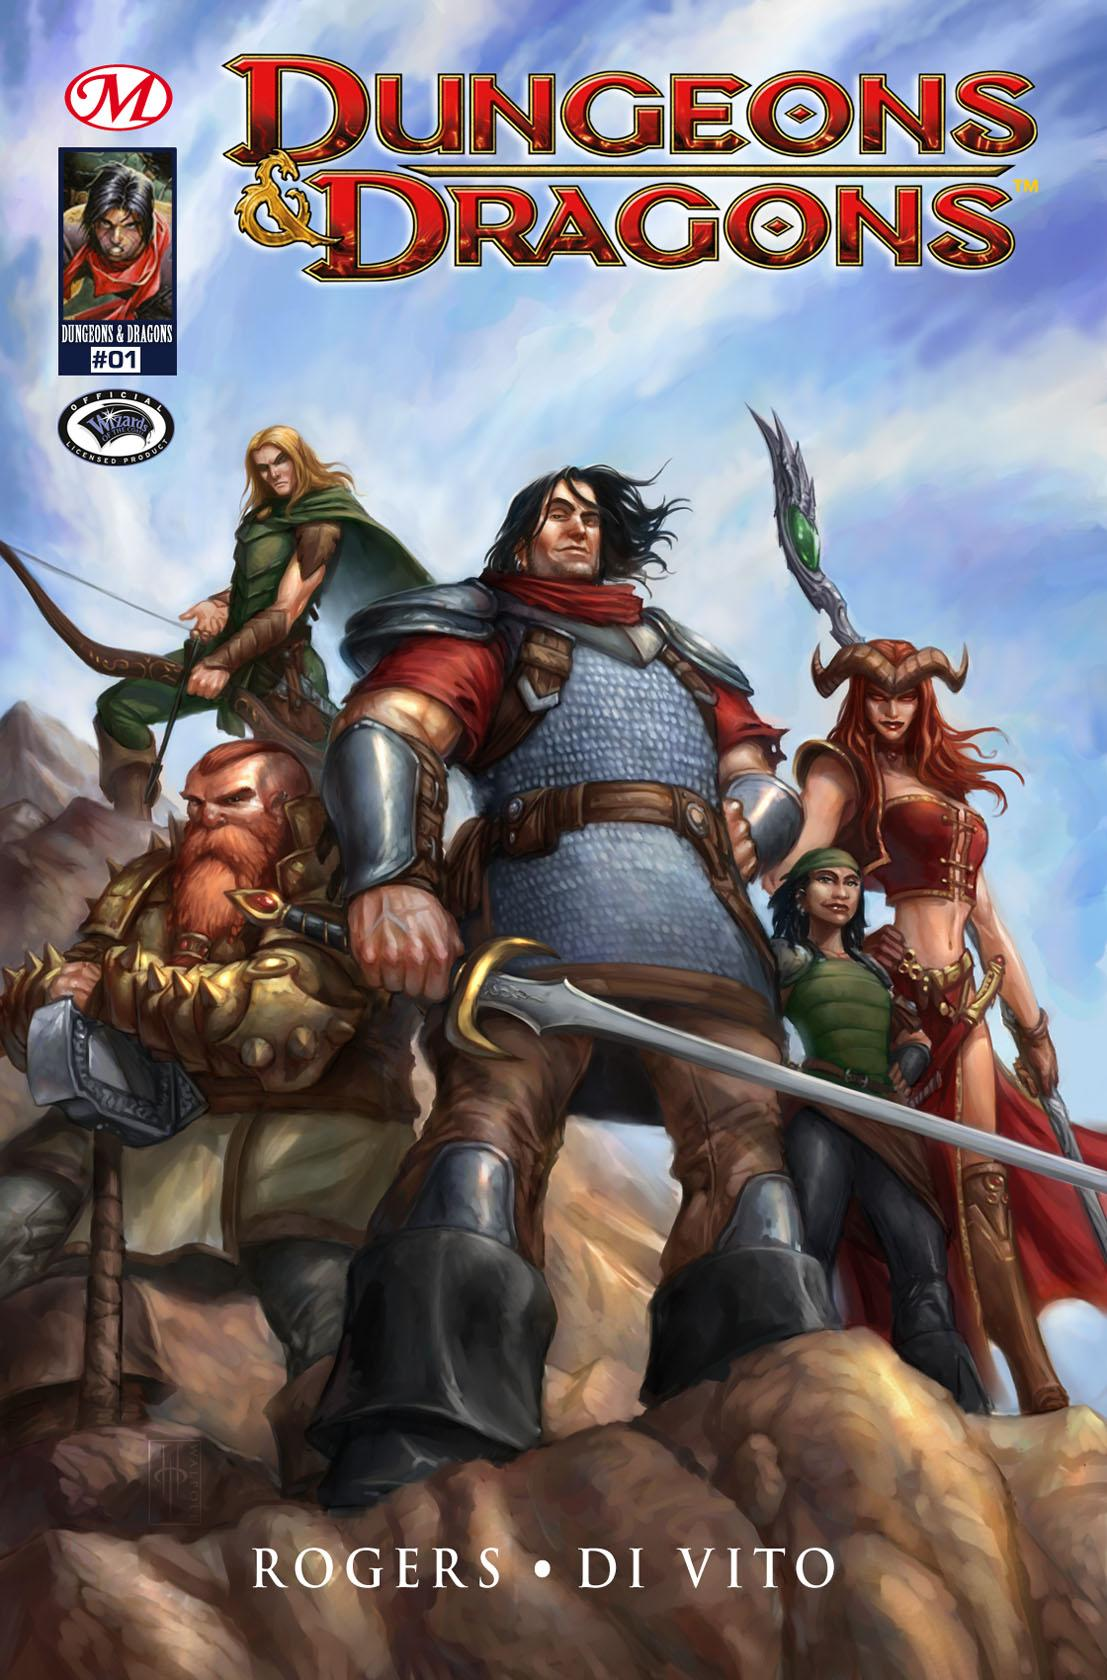 Dungeons & Dragons #1, DUNGEONS & DRAGONS, T1